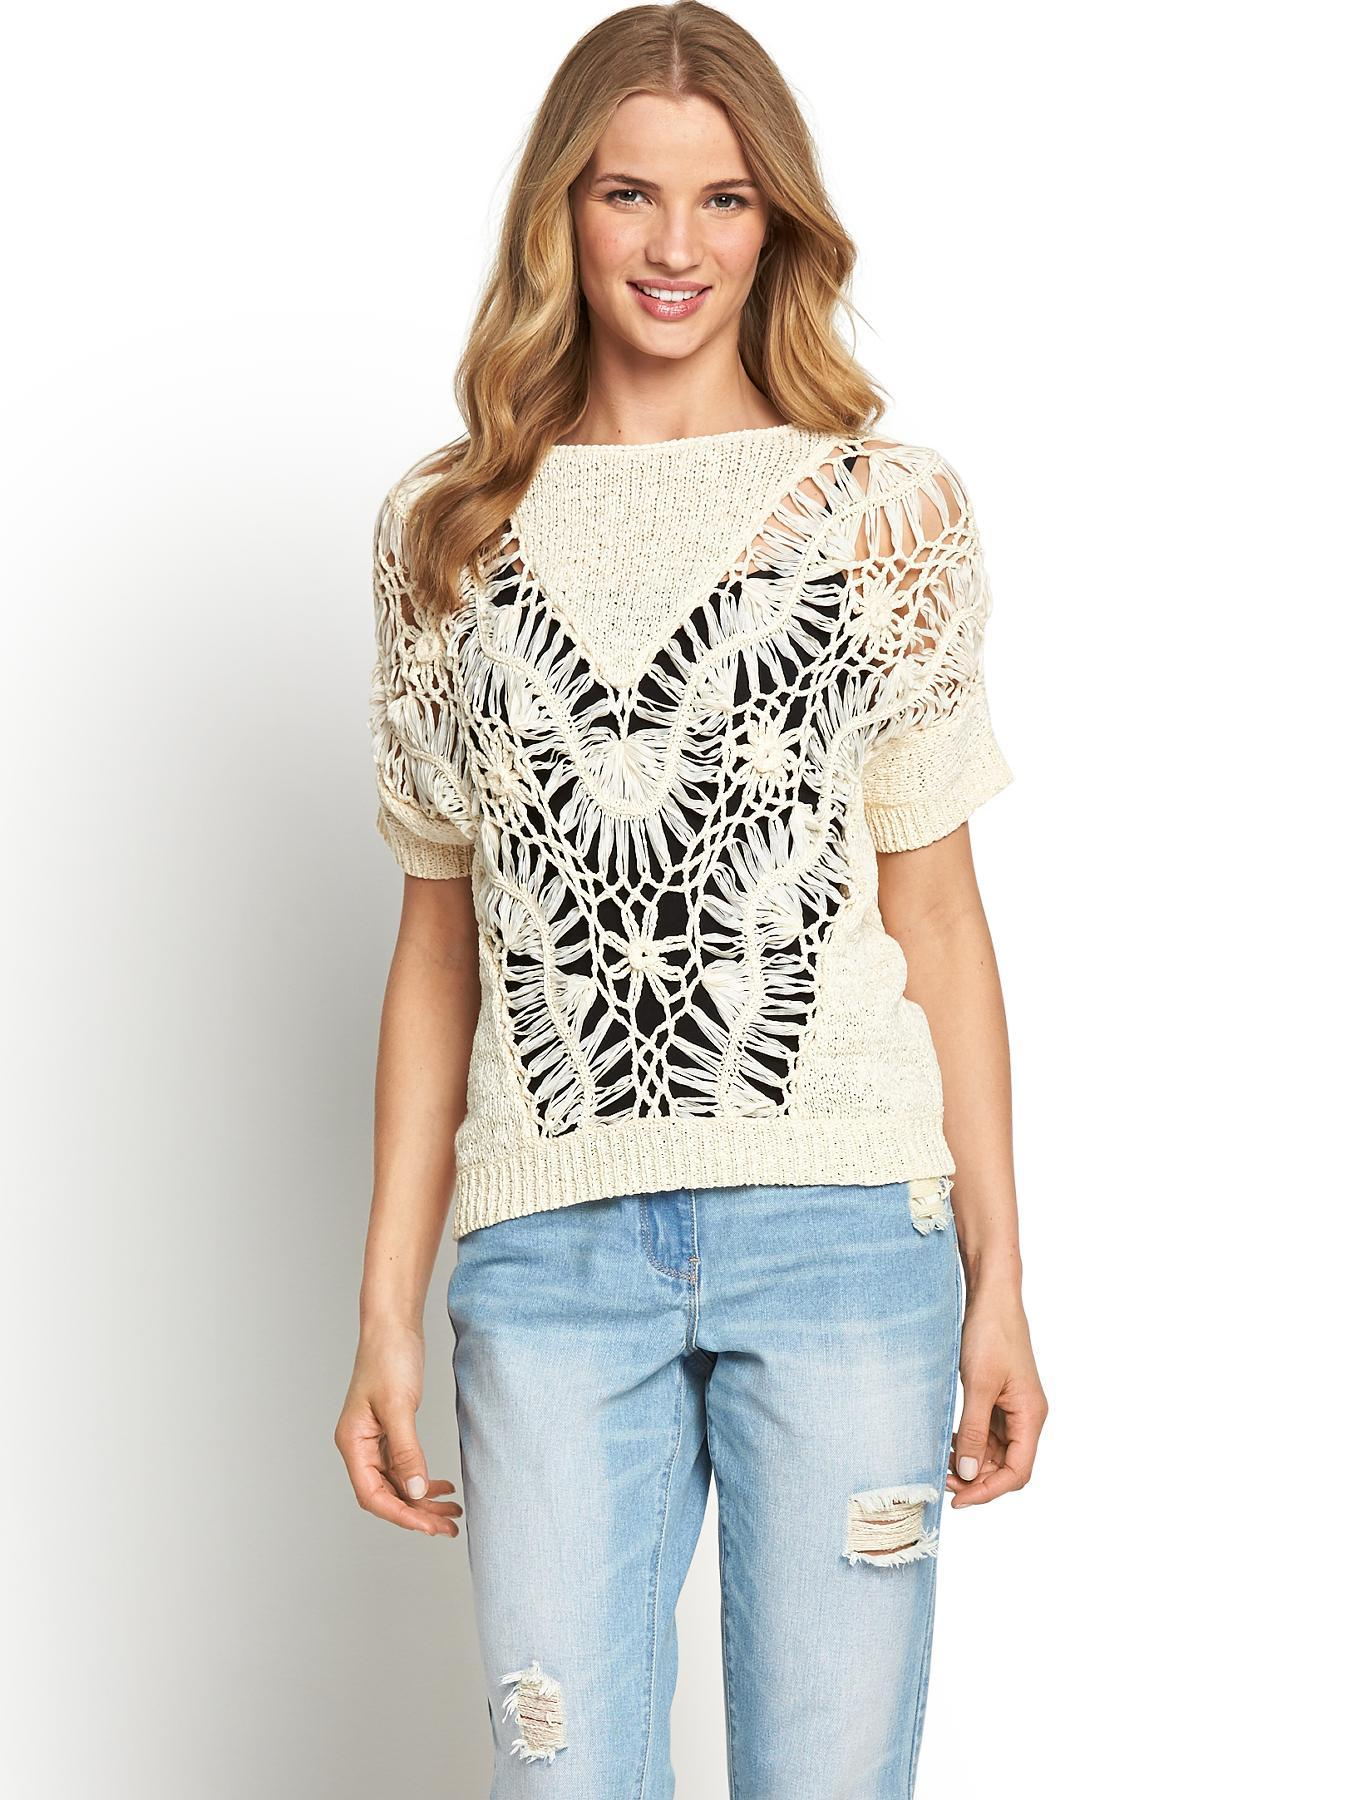 Macrame Knit Jumper, Cream,Black